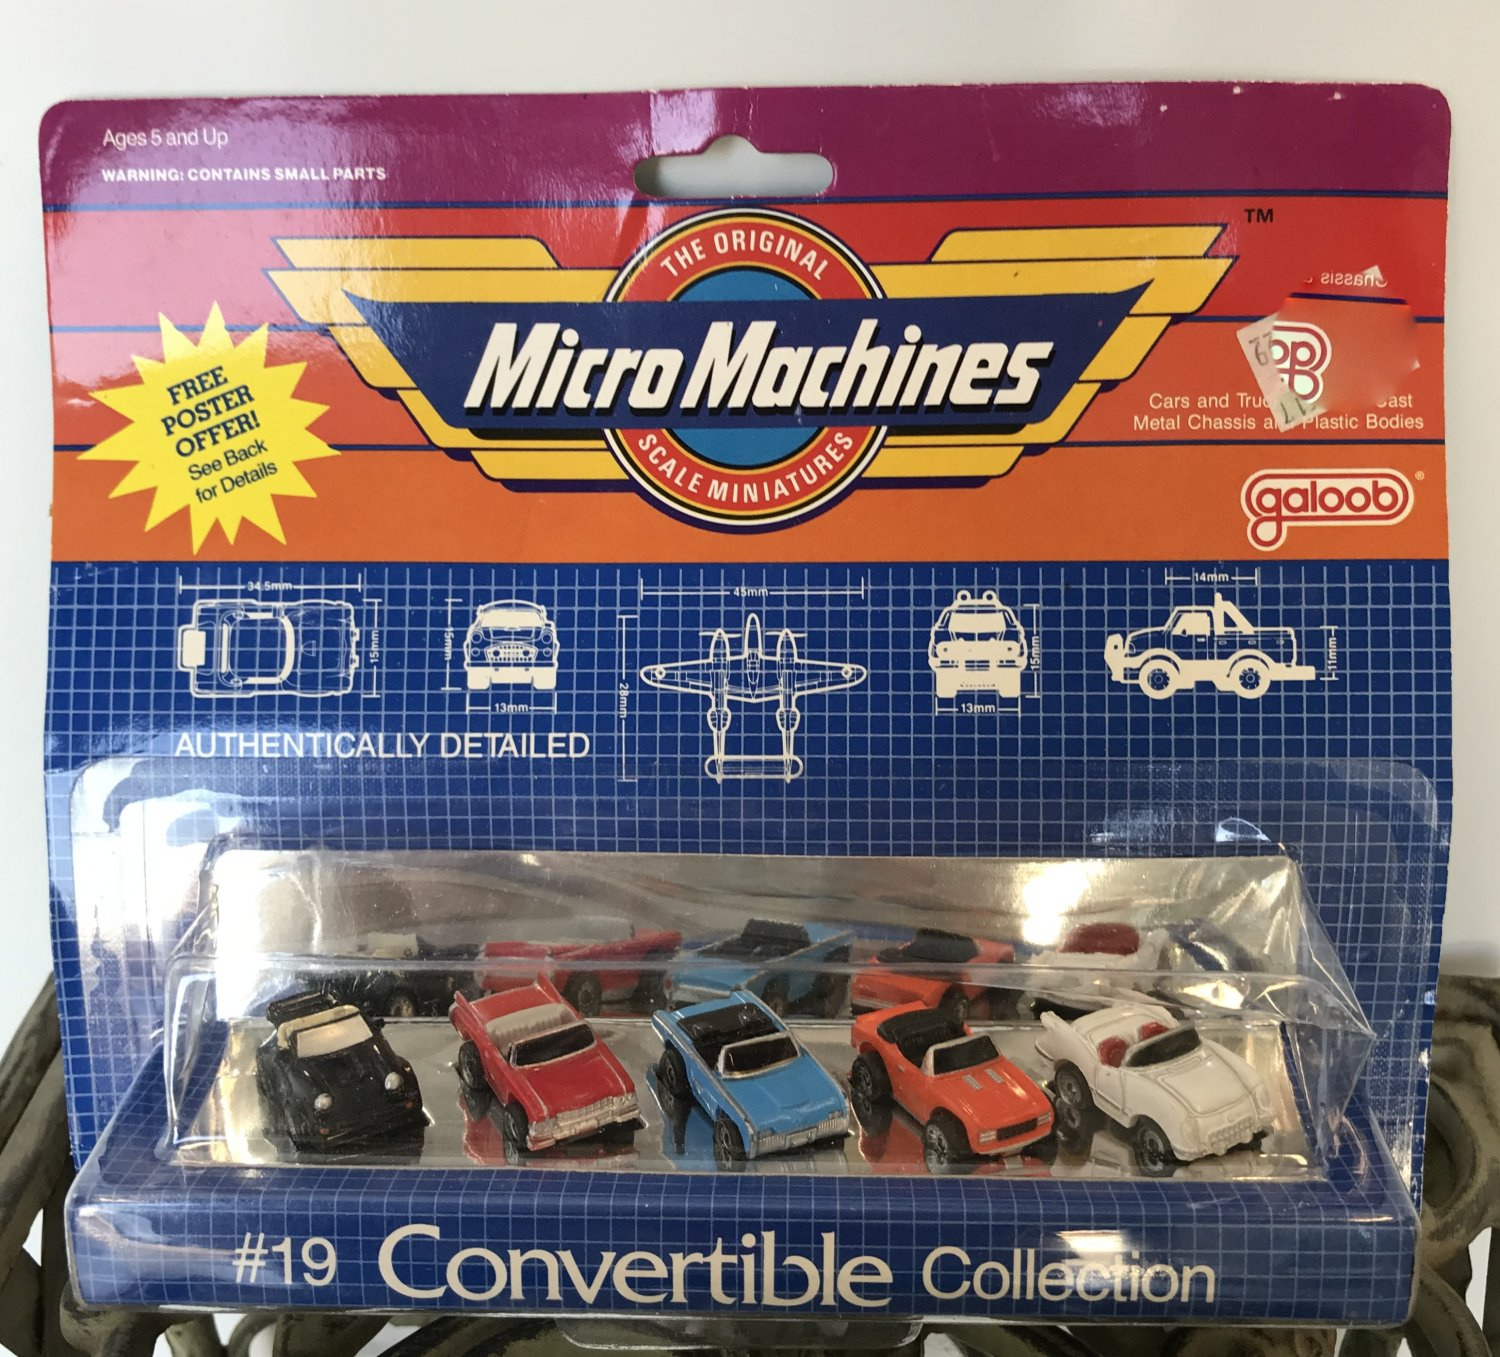 MICRO MACHINES CONVERTIBLE COLLECTION #19 Galoob Scale Miniature Vehicles 1985 Vintage Toy